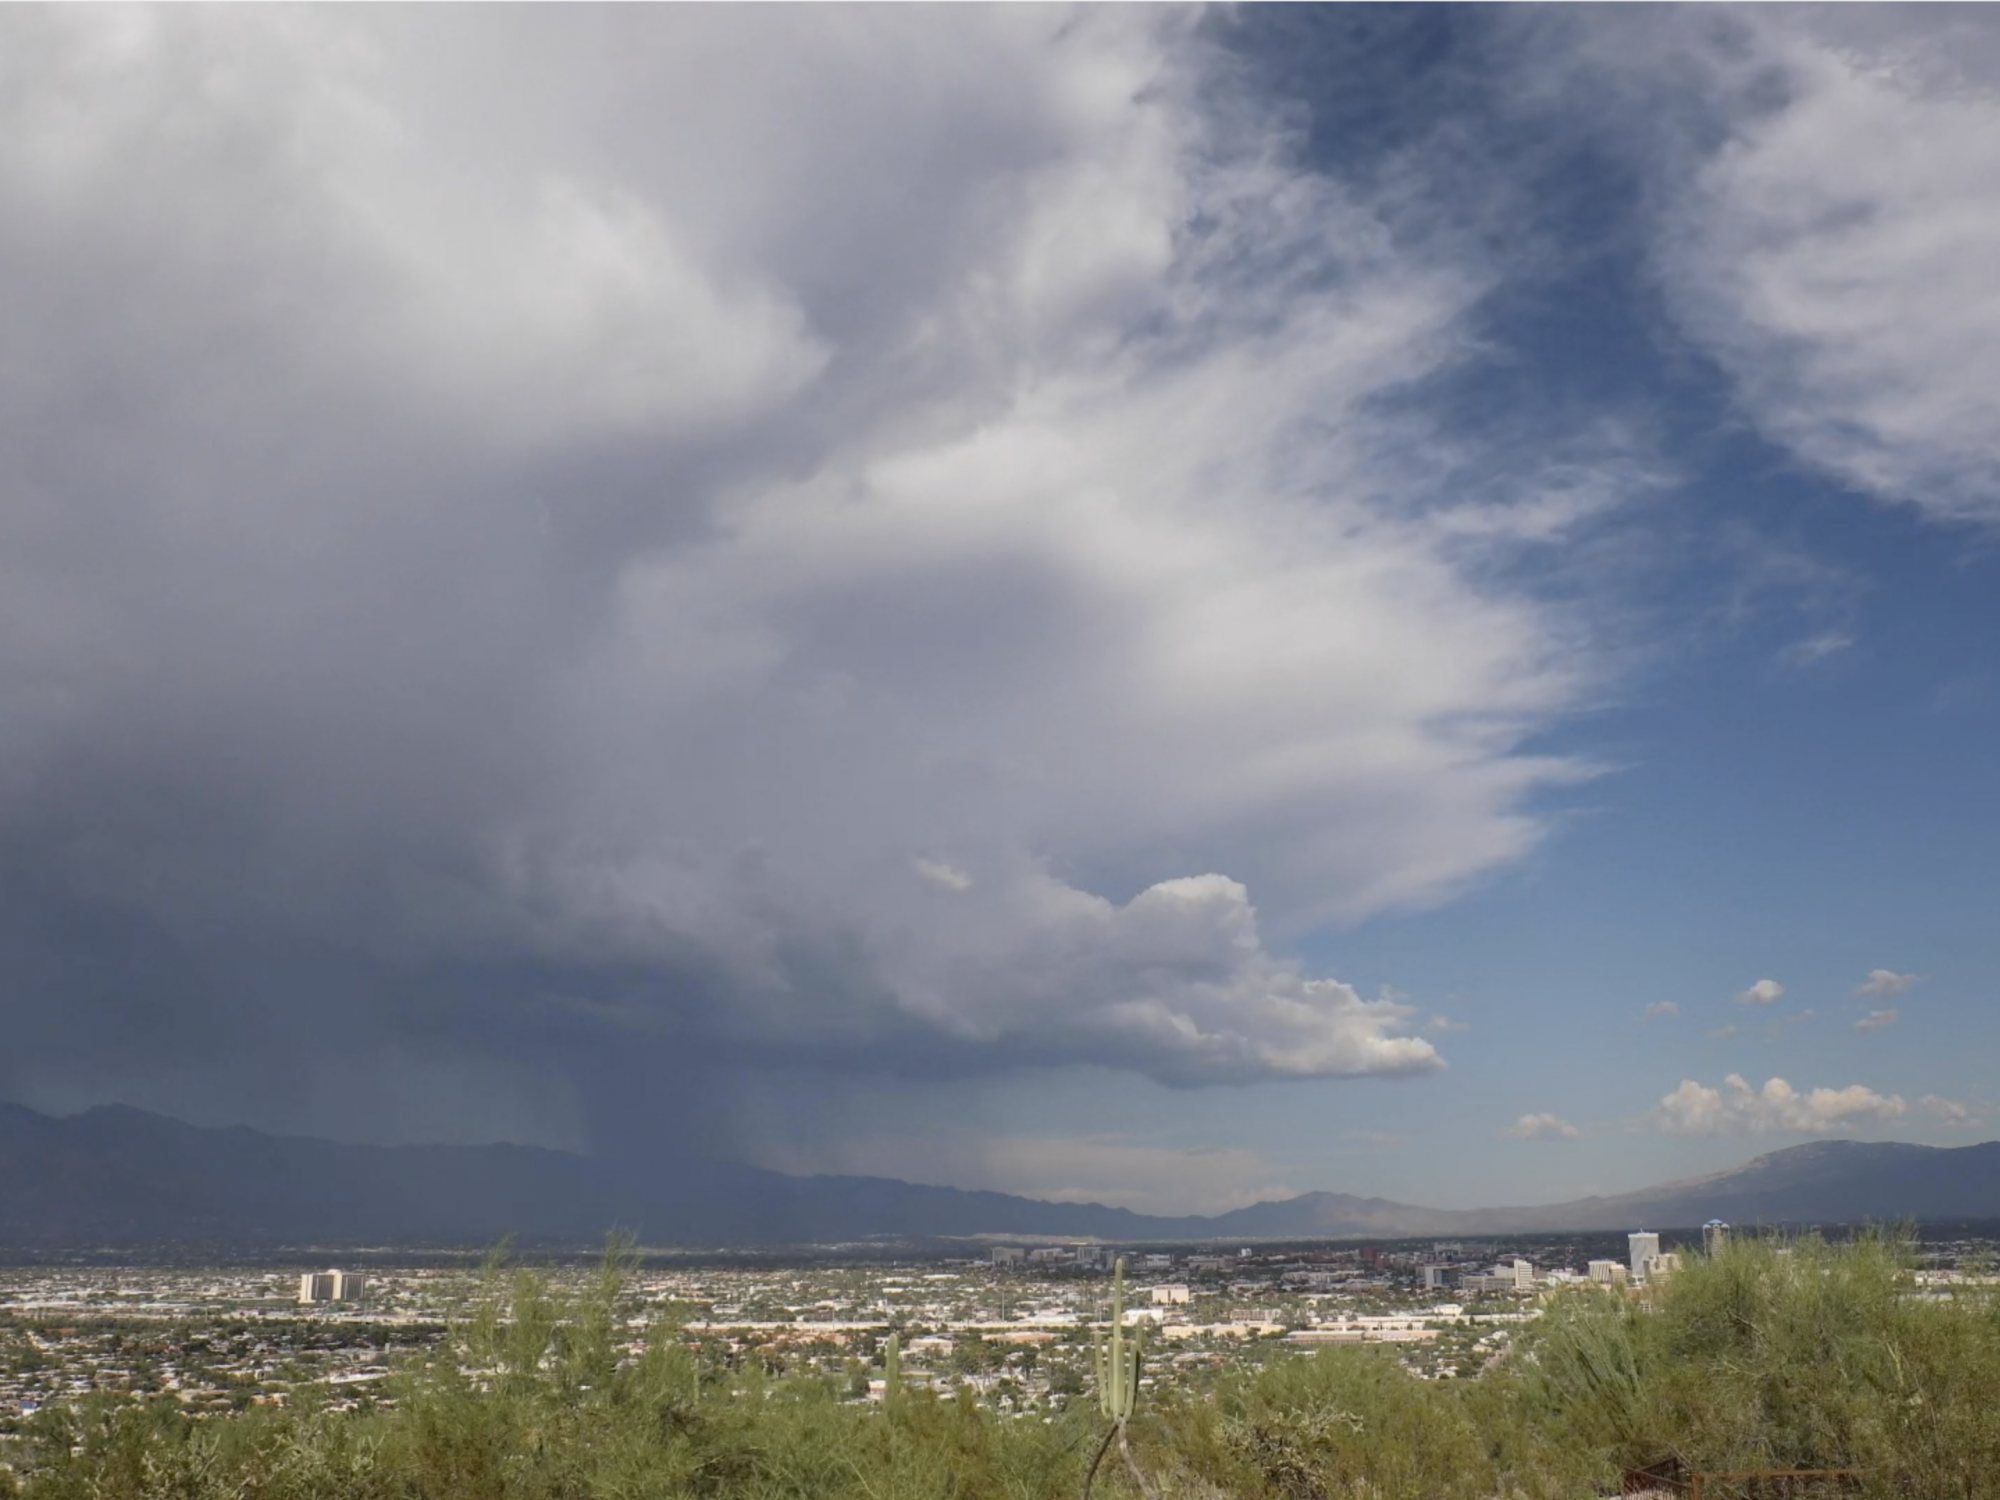 Tucson Catalinas storm from Tumamoc Hill by Nick Georgiou